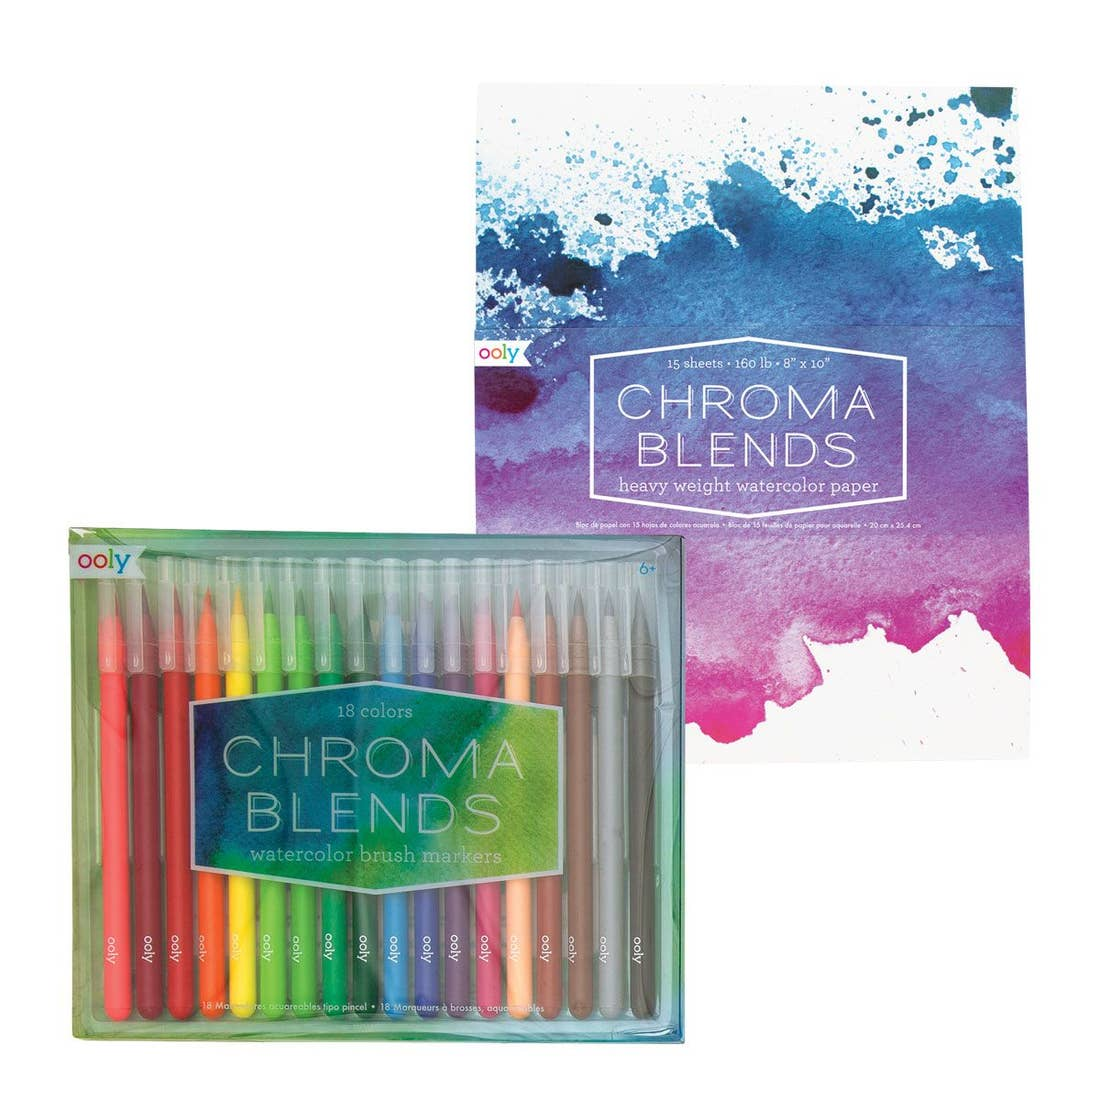 Chroma Blends Creative Sketch Pack